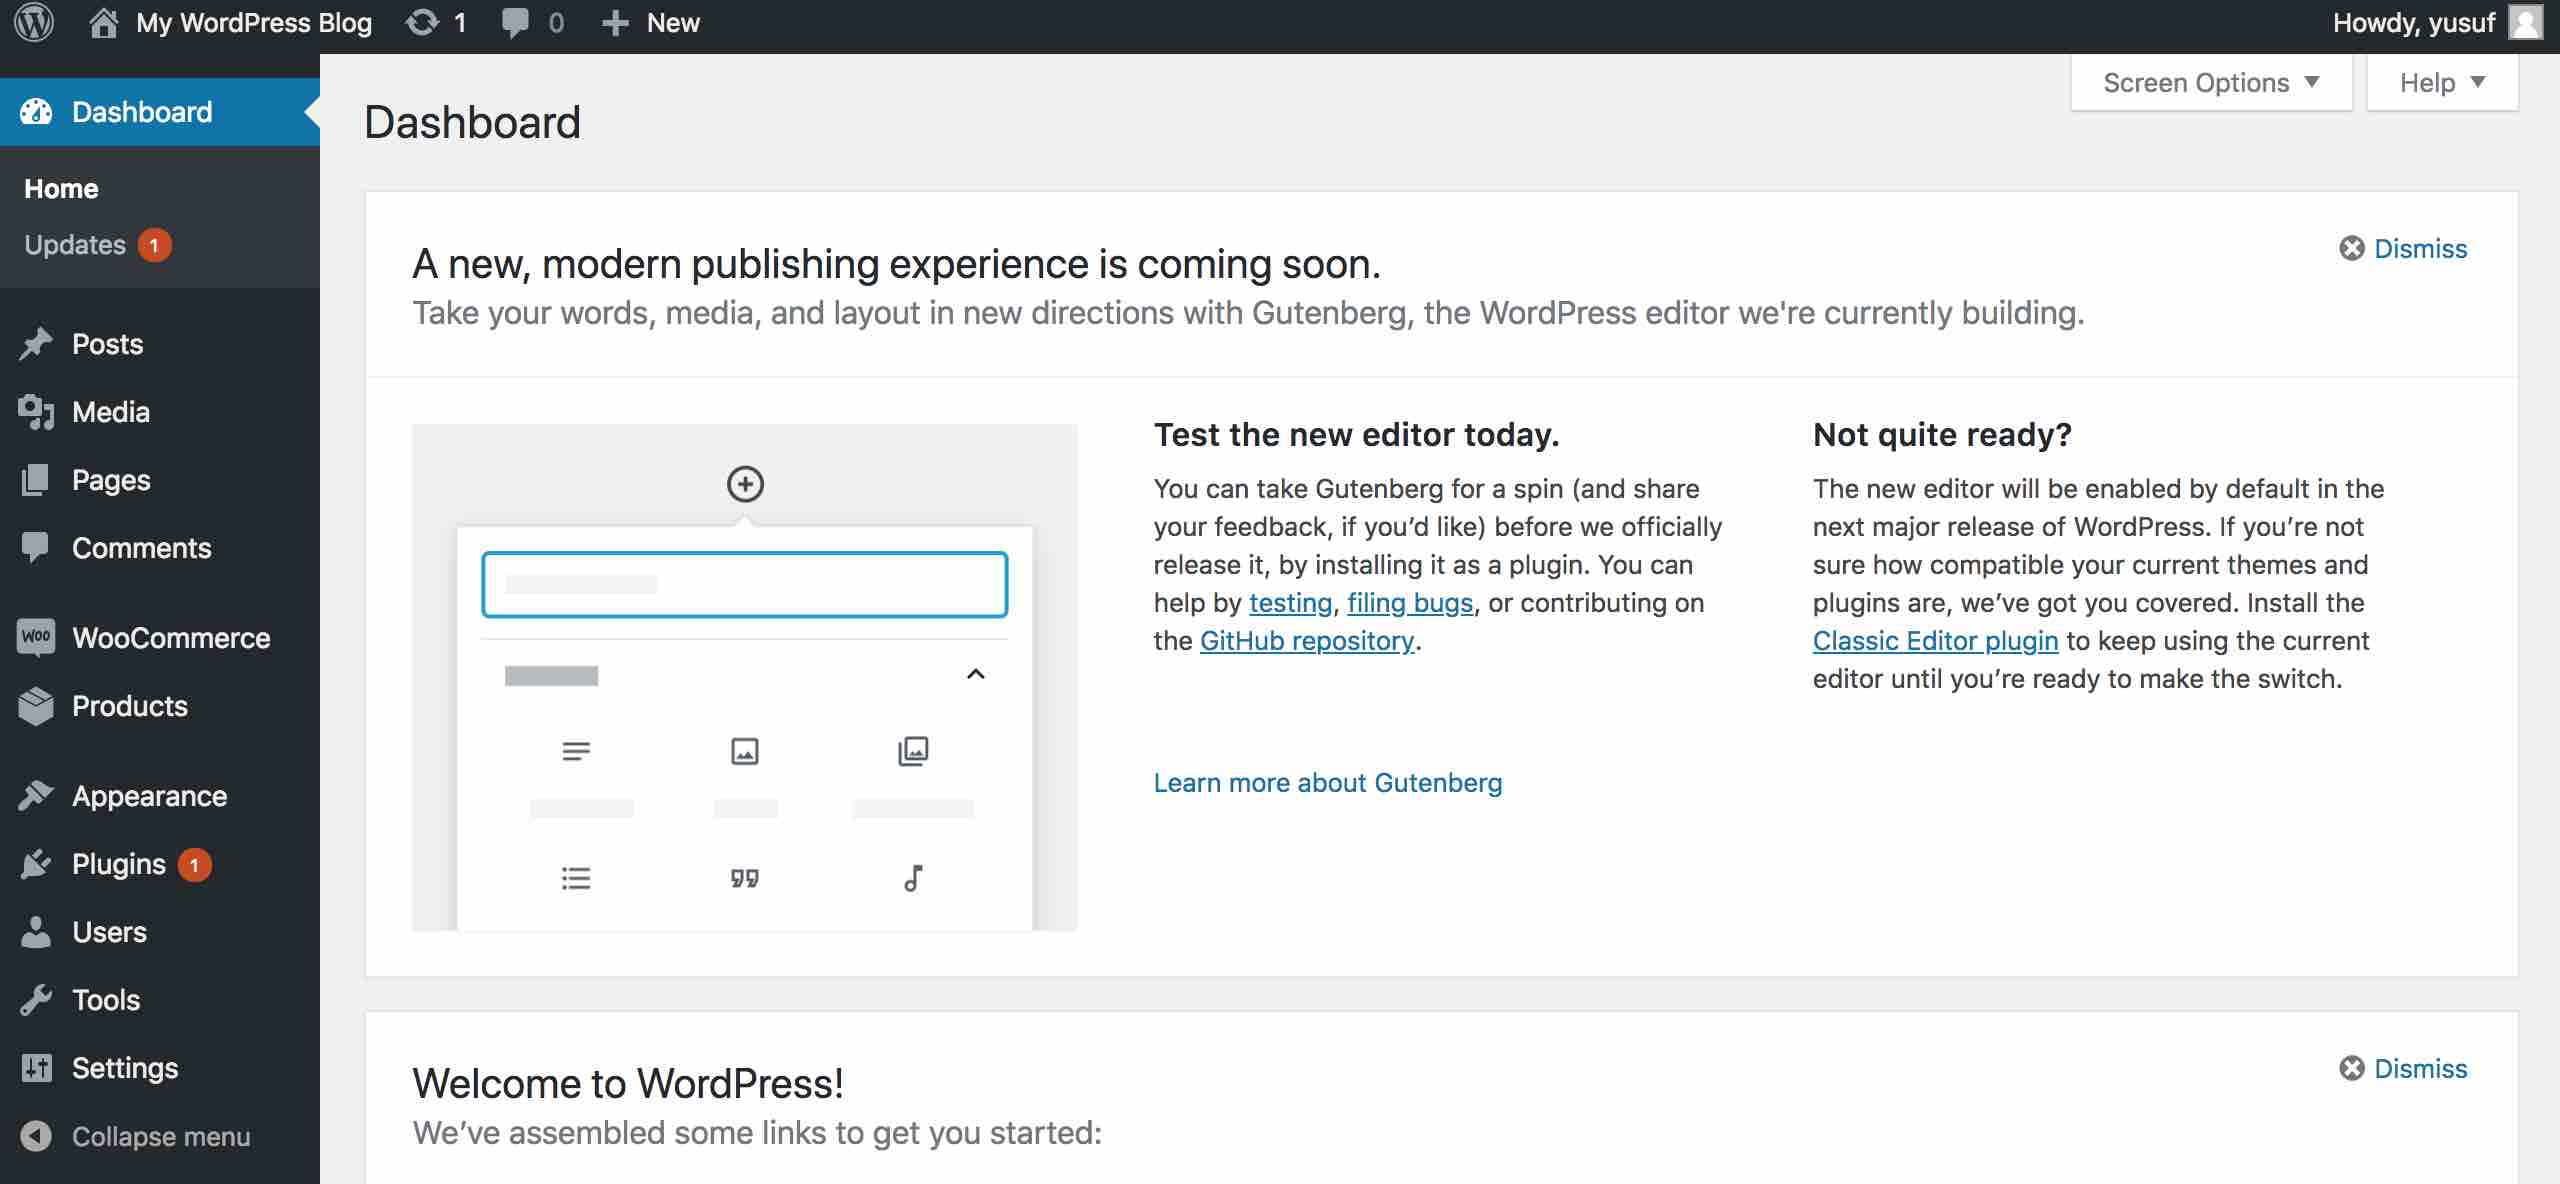 wordpress wp-admin dasboard page